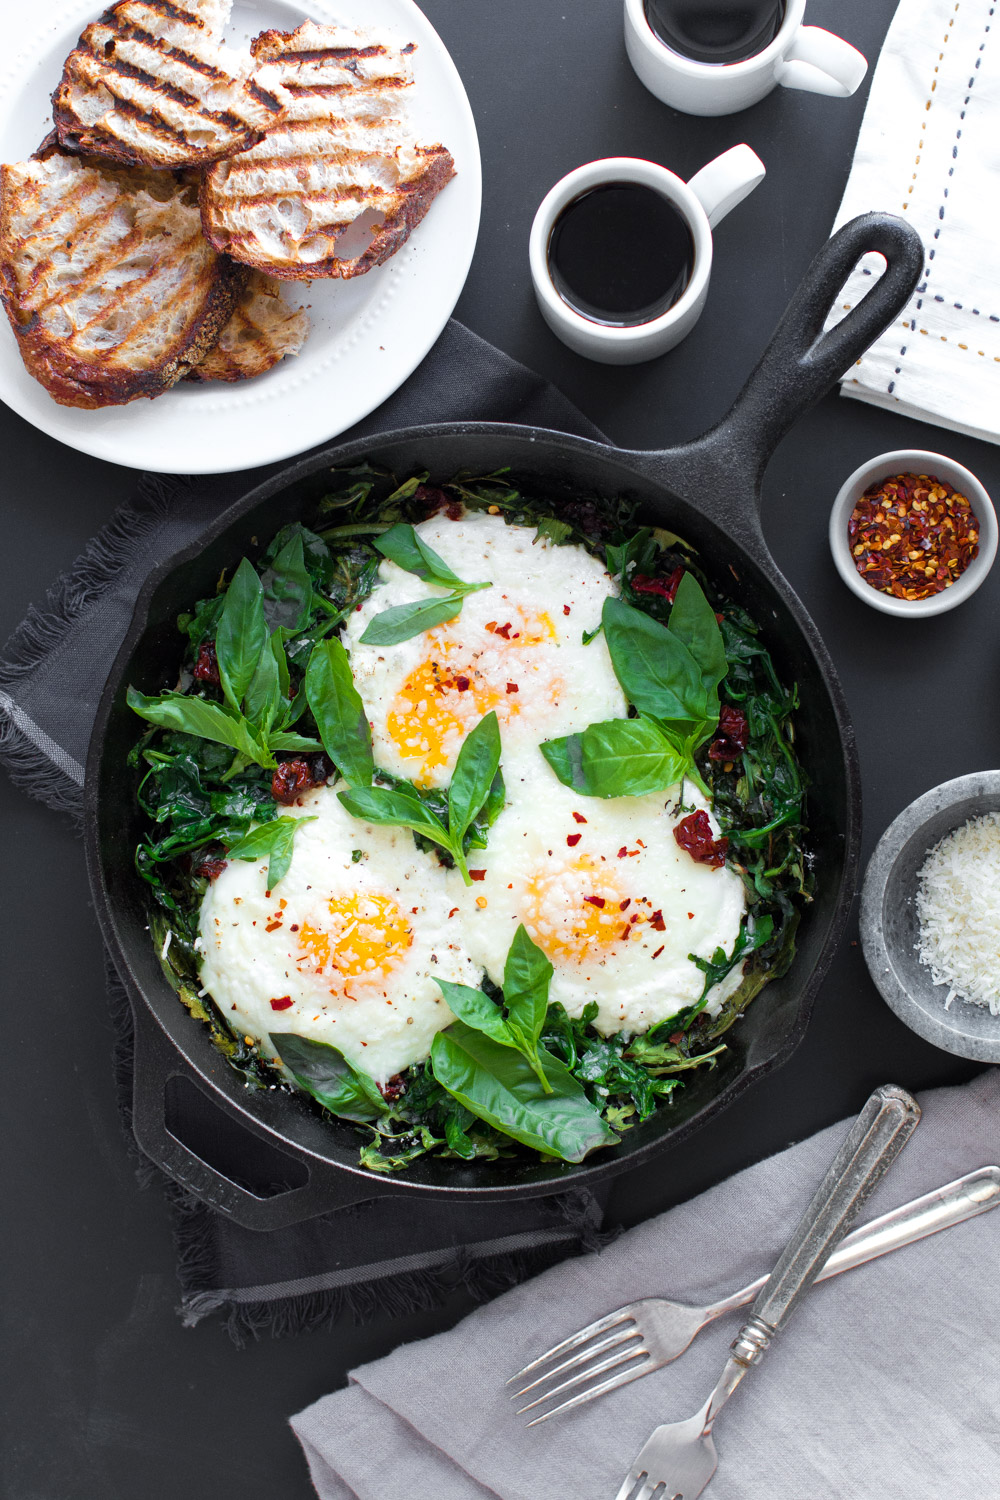 Baked Eggs with Ricotta, Greens & Sun Dried Tomatoes-35